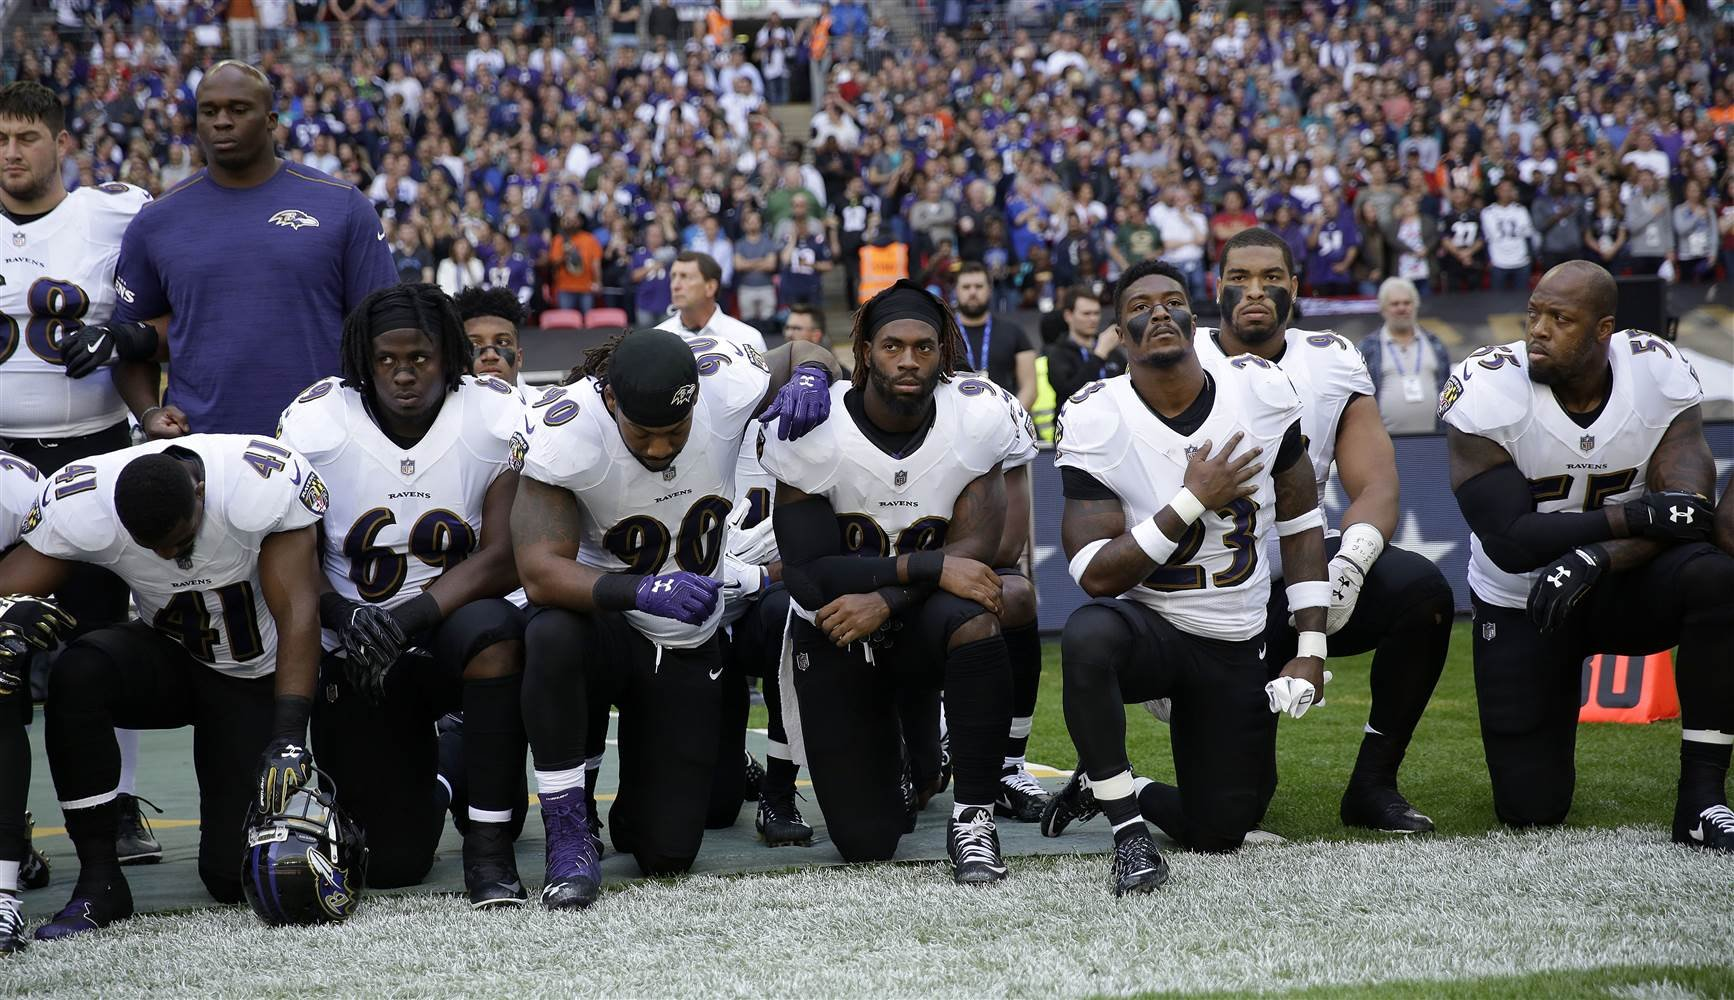 'I do not belong here': Ravens national anthem singer announces resignation